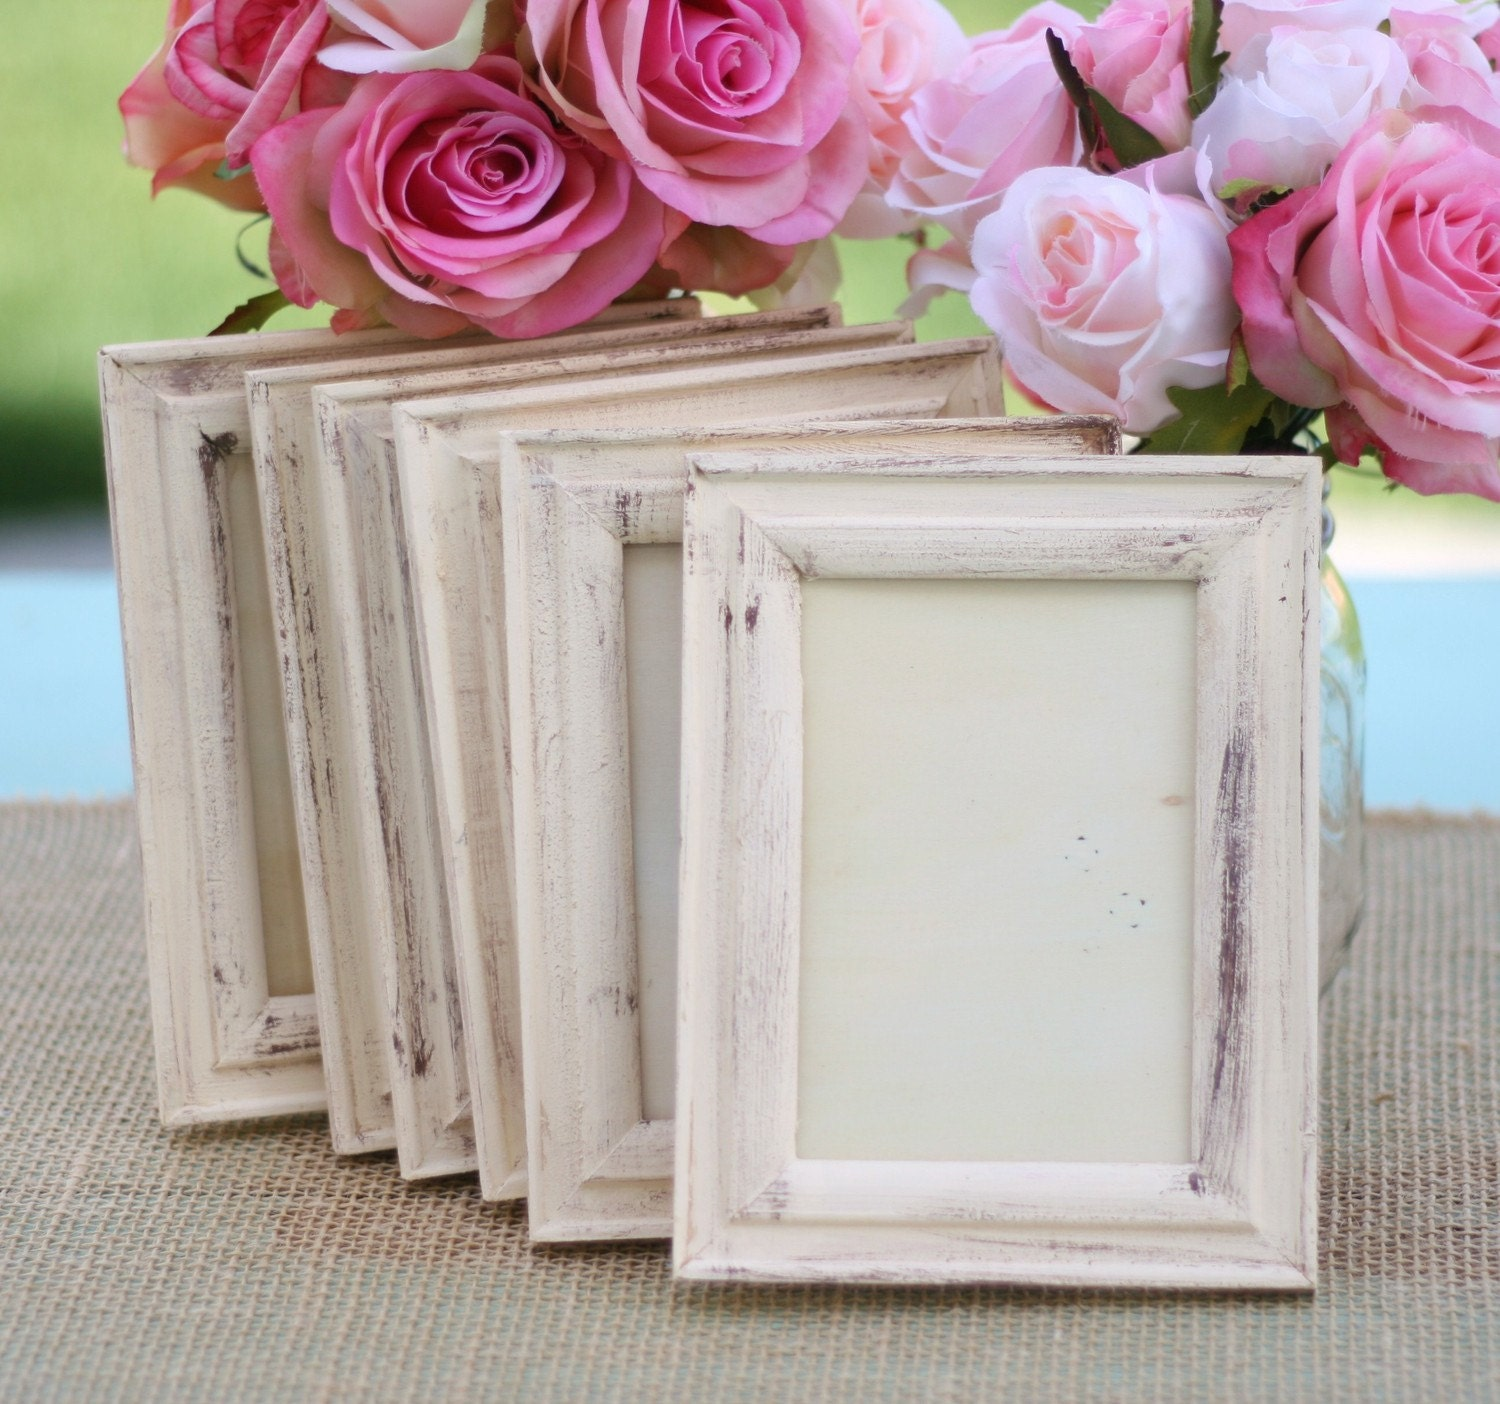 Wedding Frame: Wedding Frame Shabby Chic Rustic Distressed Paint By